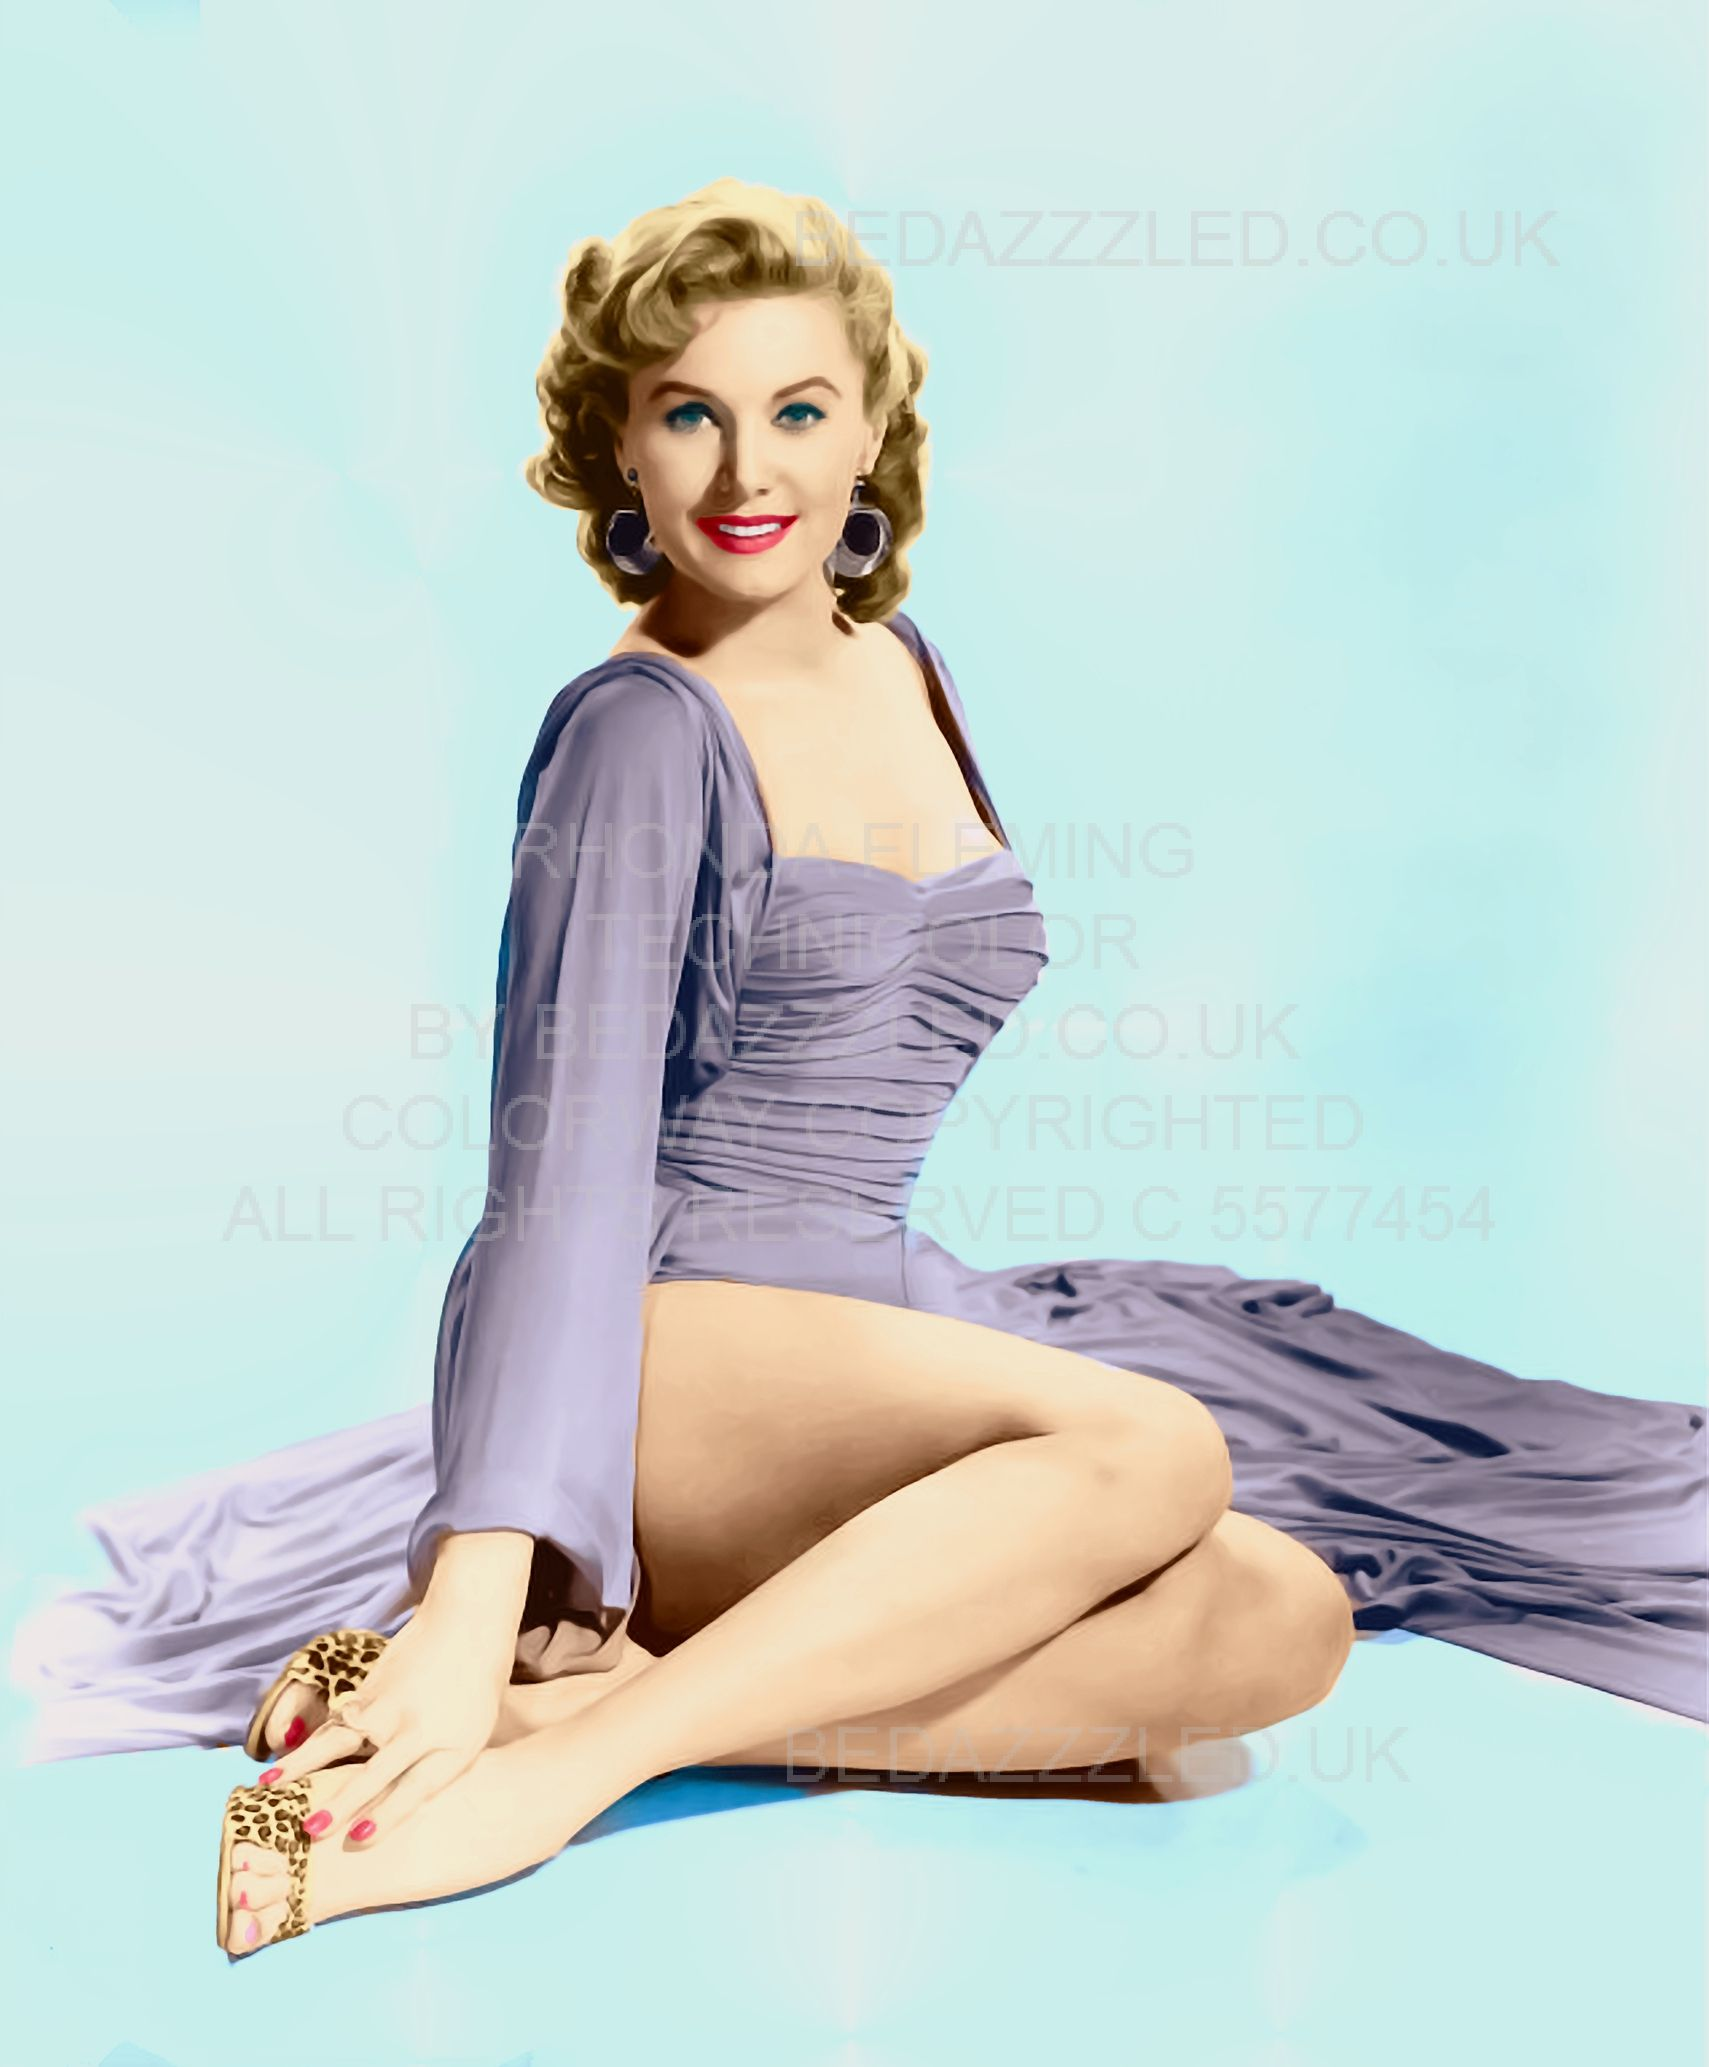 RHONDA FLEMING COLOR BY BEDAZZZLED ...